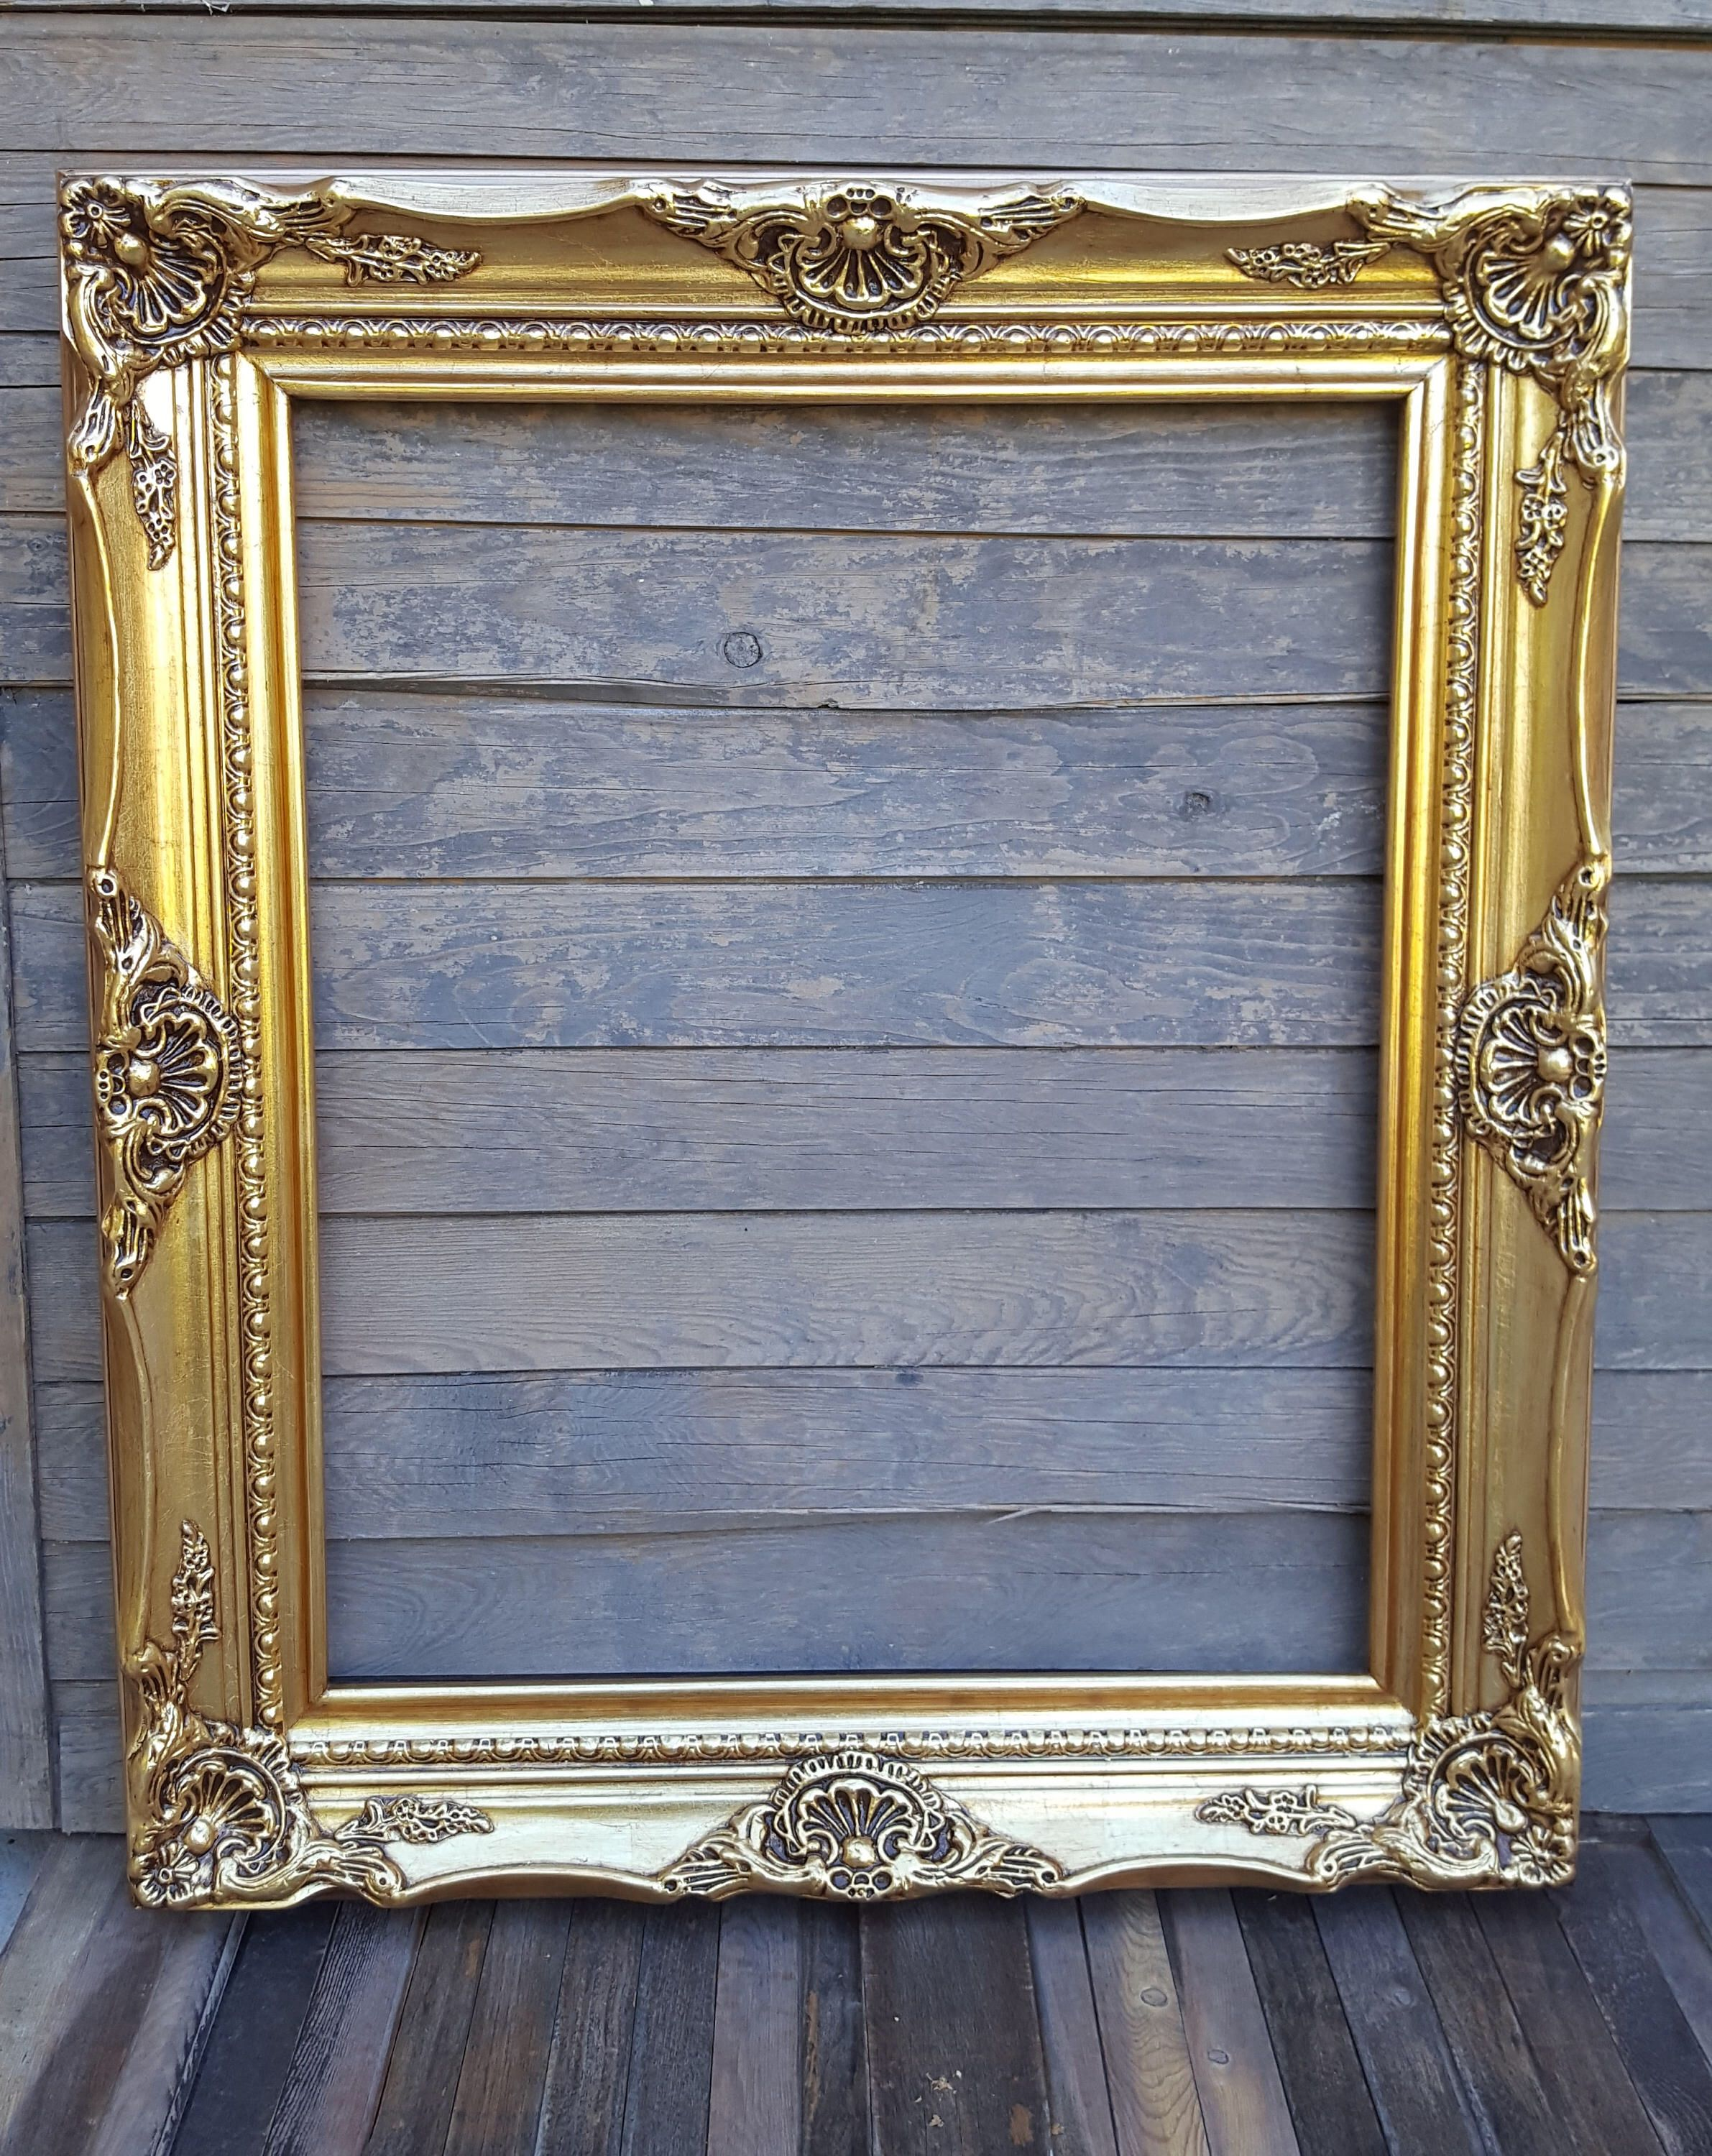 Classic Colonial Style Wood Picture Frame Gold Leaf Frame Etsy In 2020 Picture On Wood Wood Picture Frames Custom Picture Frame